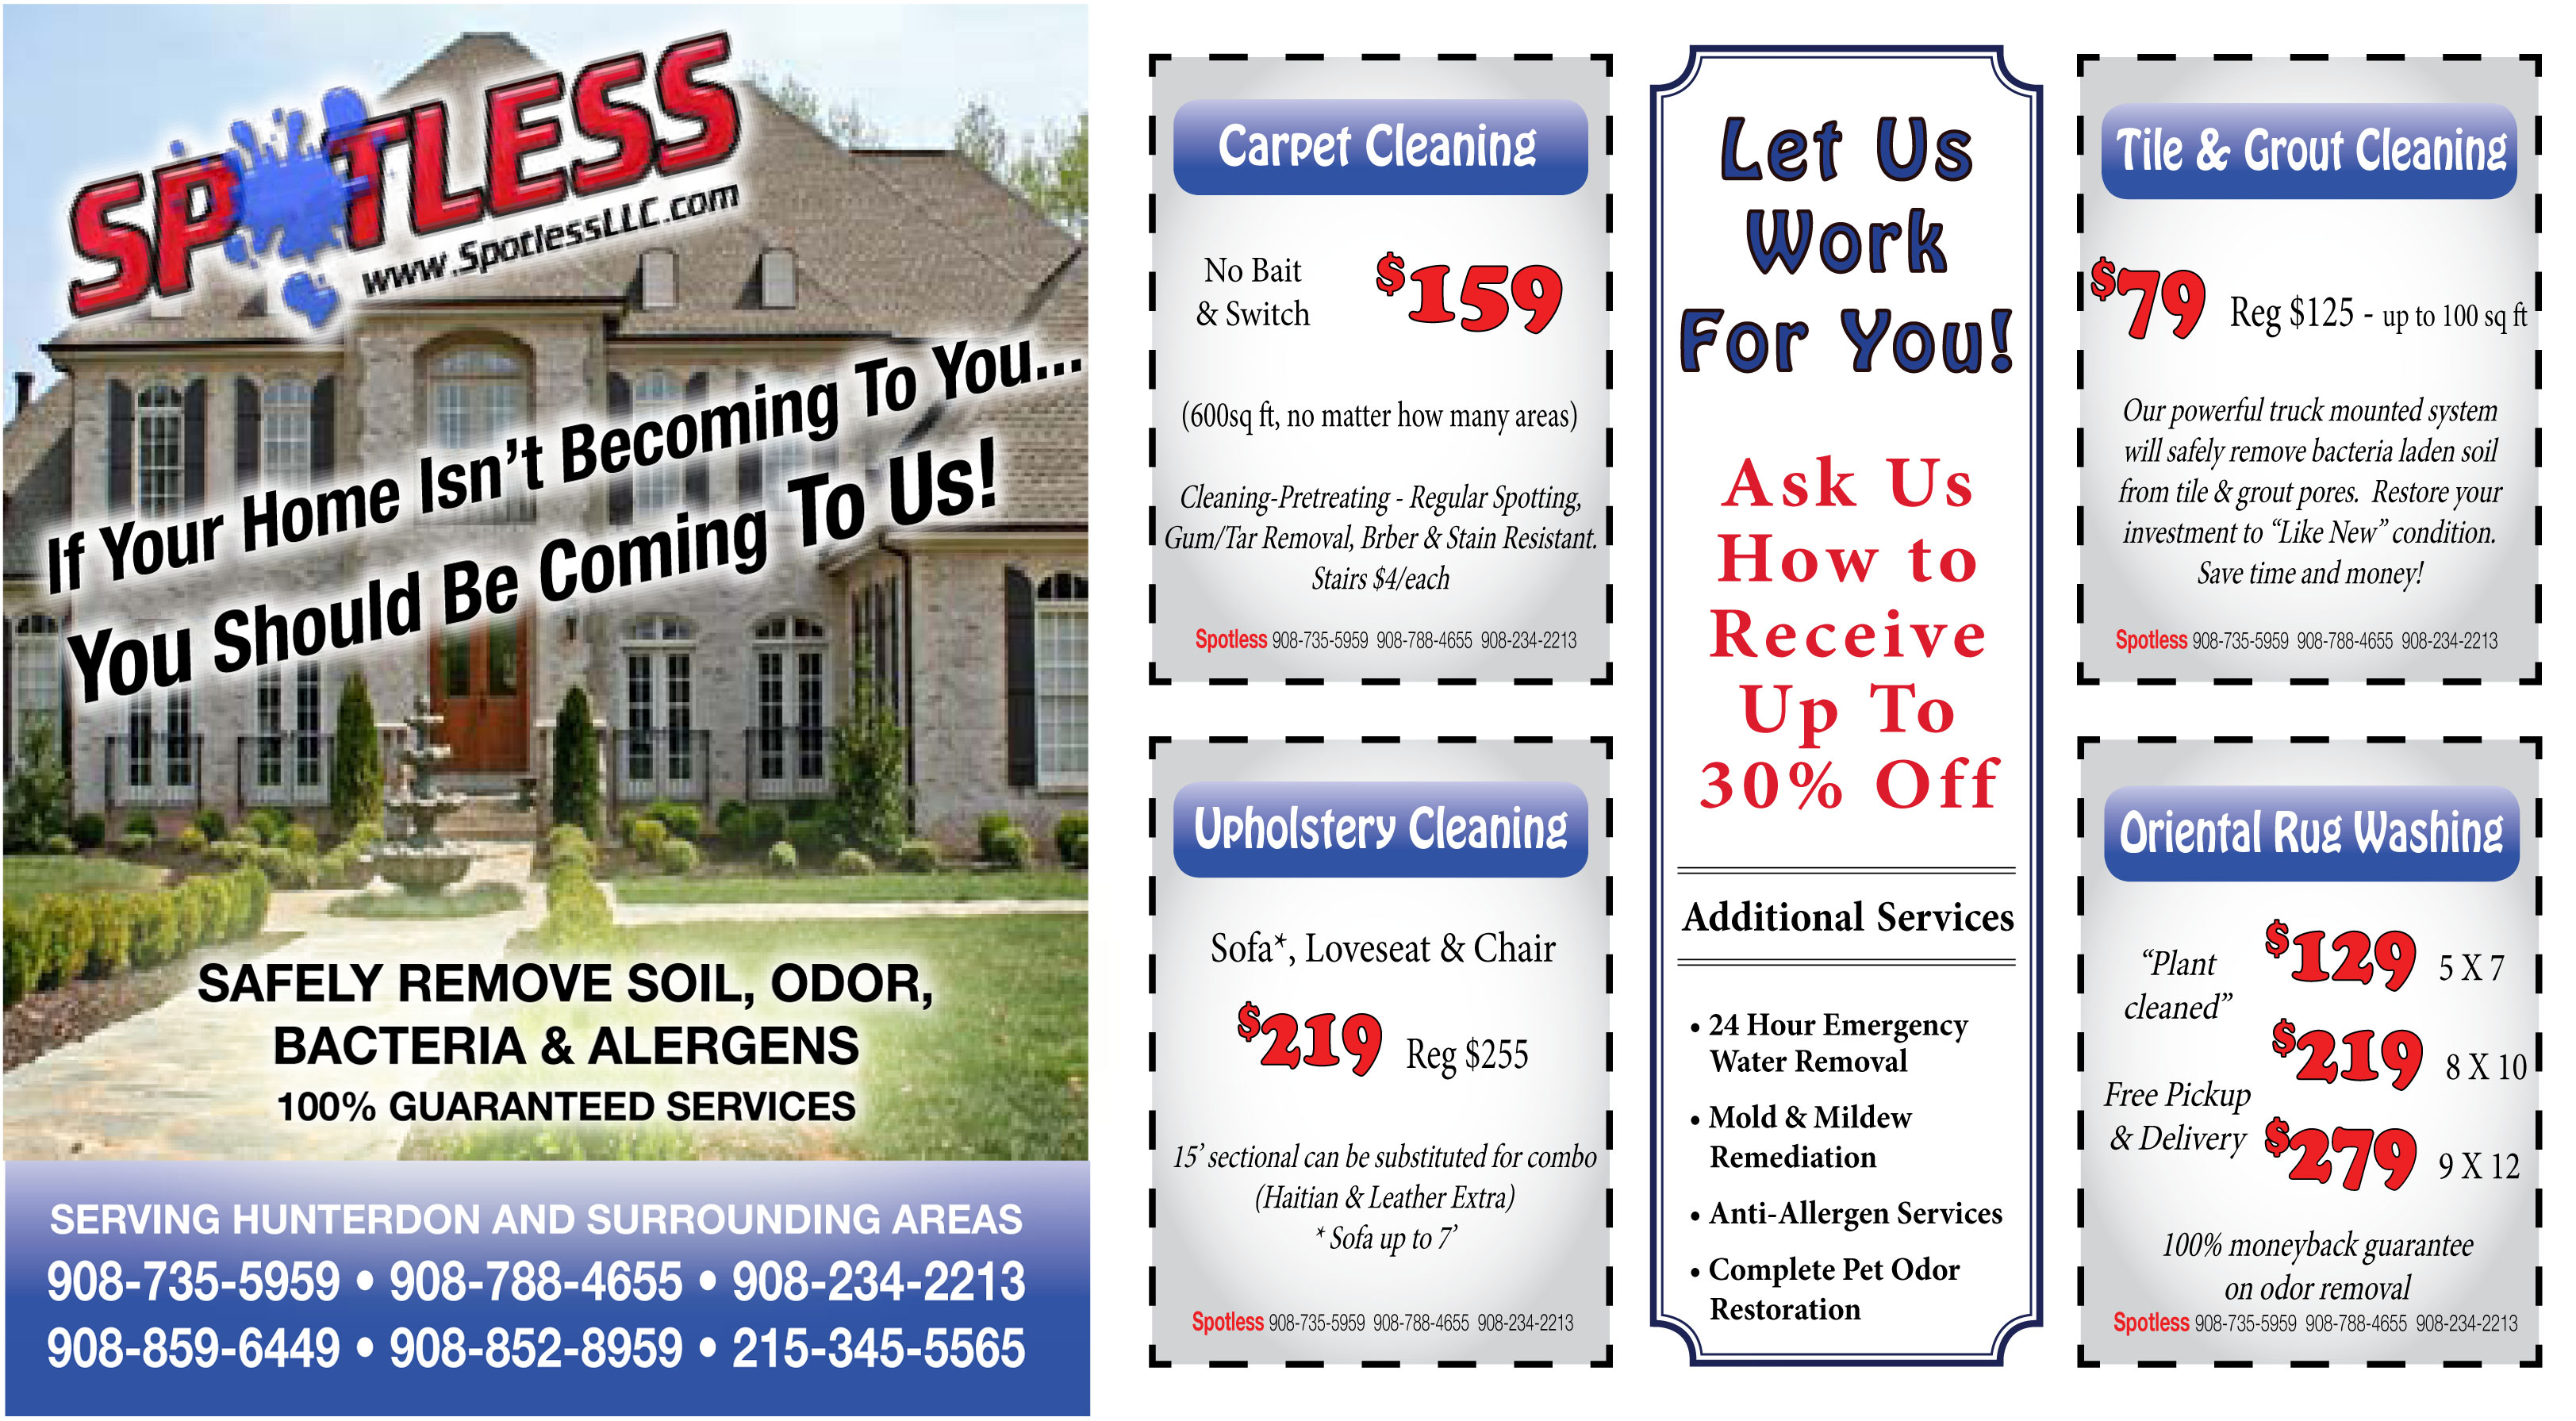 Spotless cleaning and service coupons